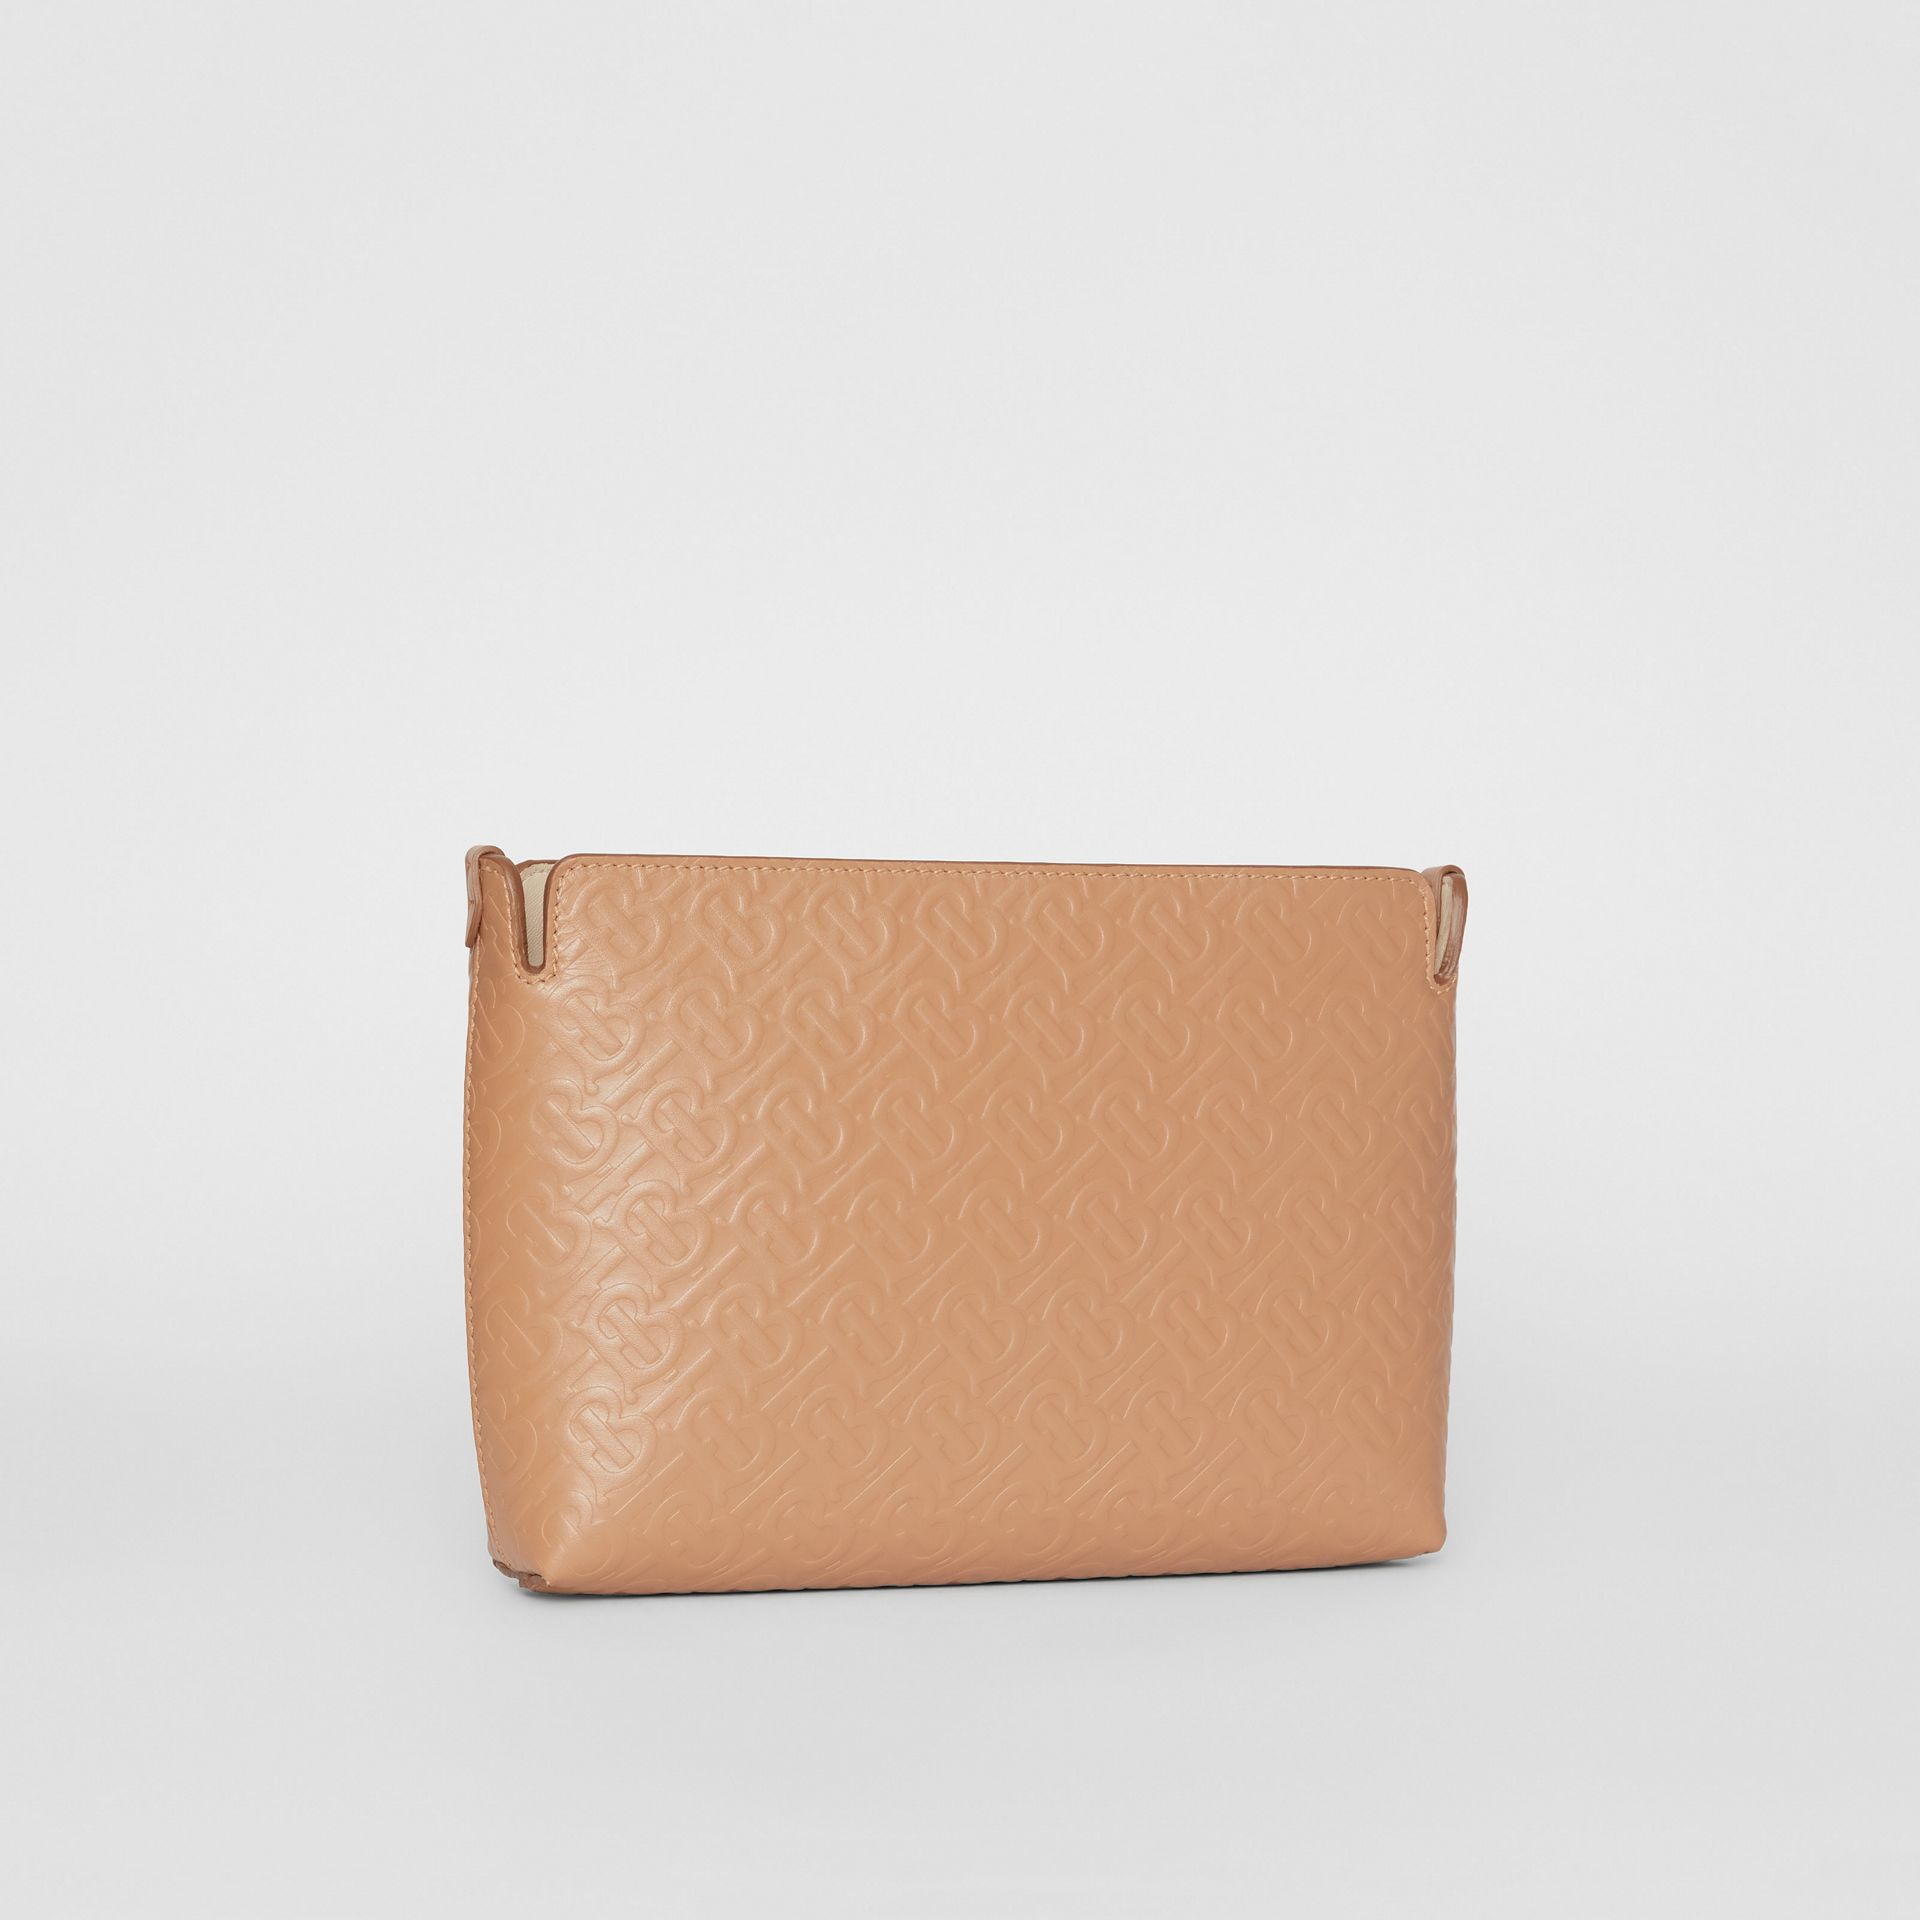 Medium Monogram Leather Clutch in Light Camel - Women | Burberry - gallery image 5